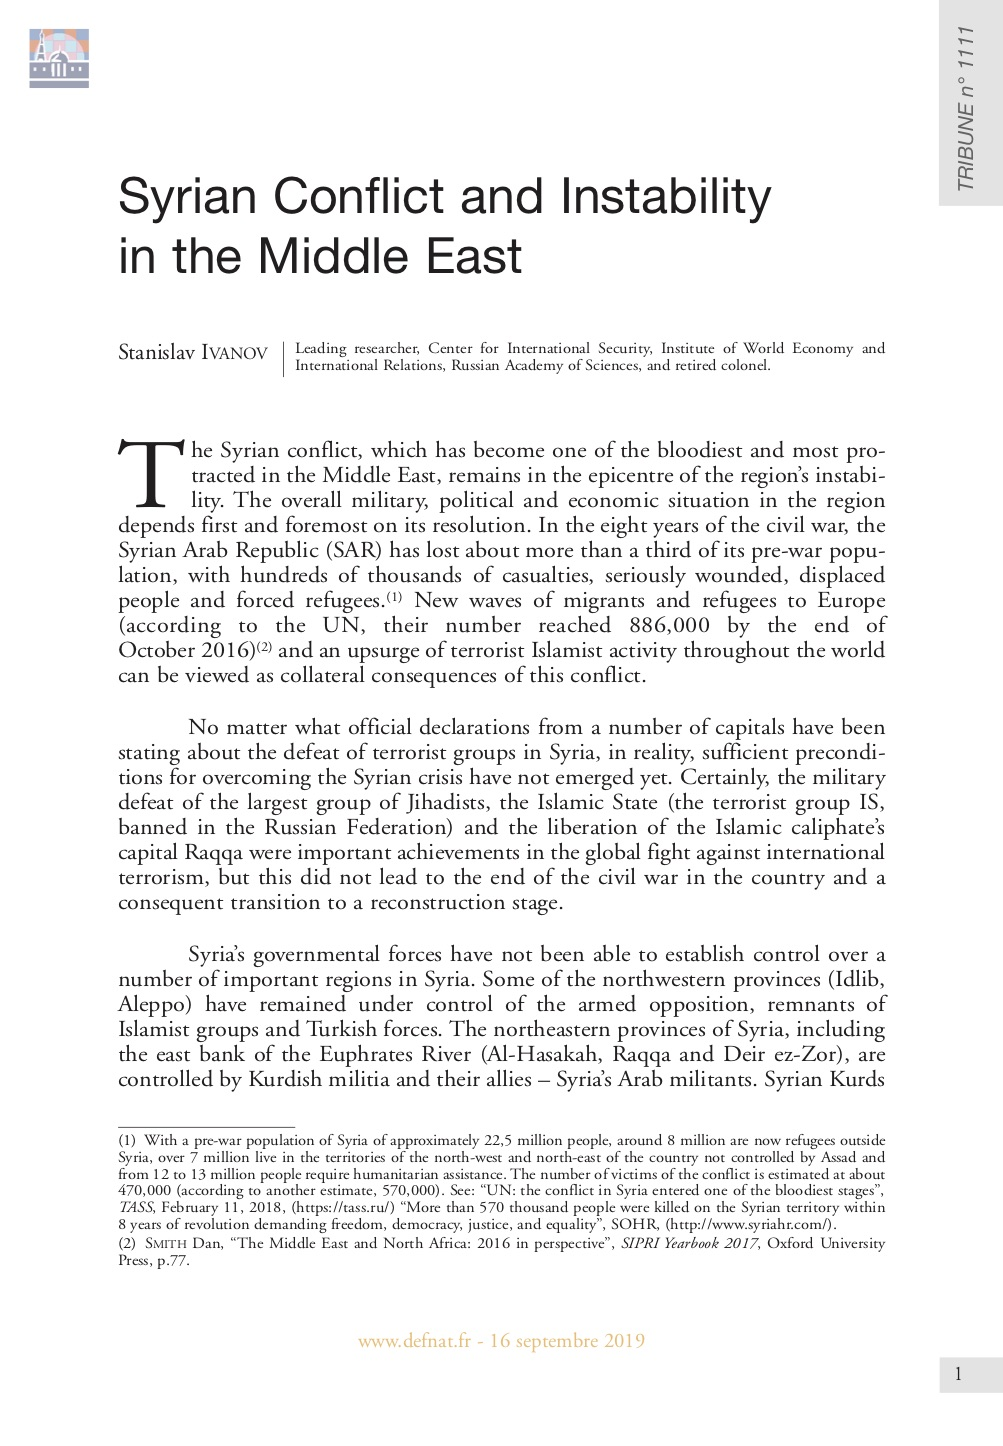 Syrian Conflict and Instability in the Middle East (T 1111)